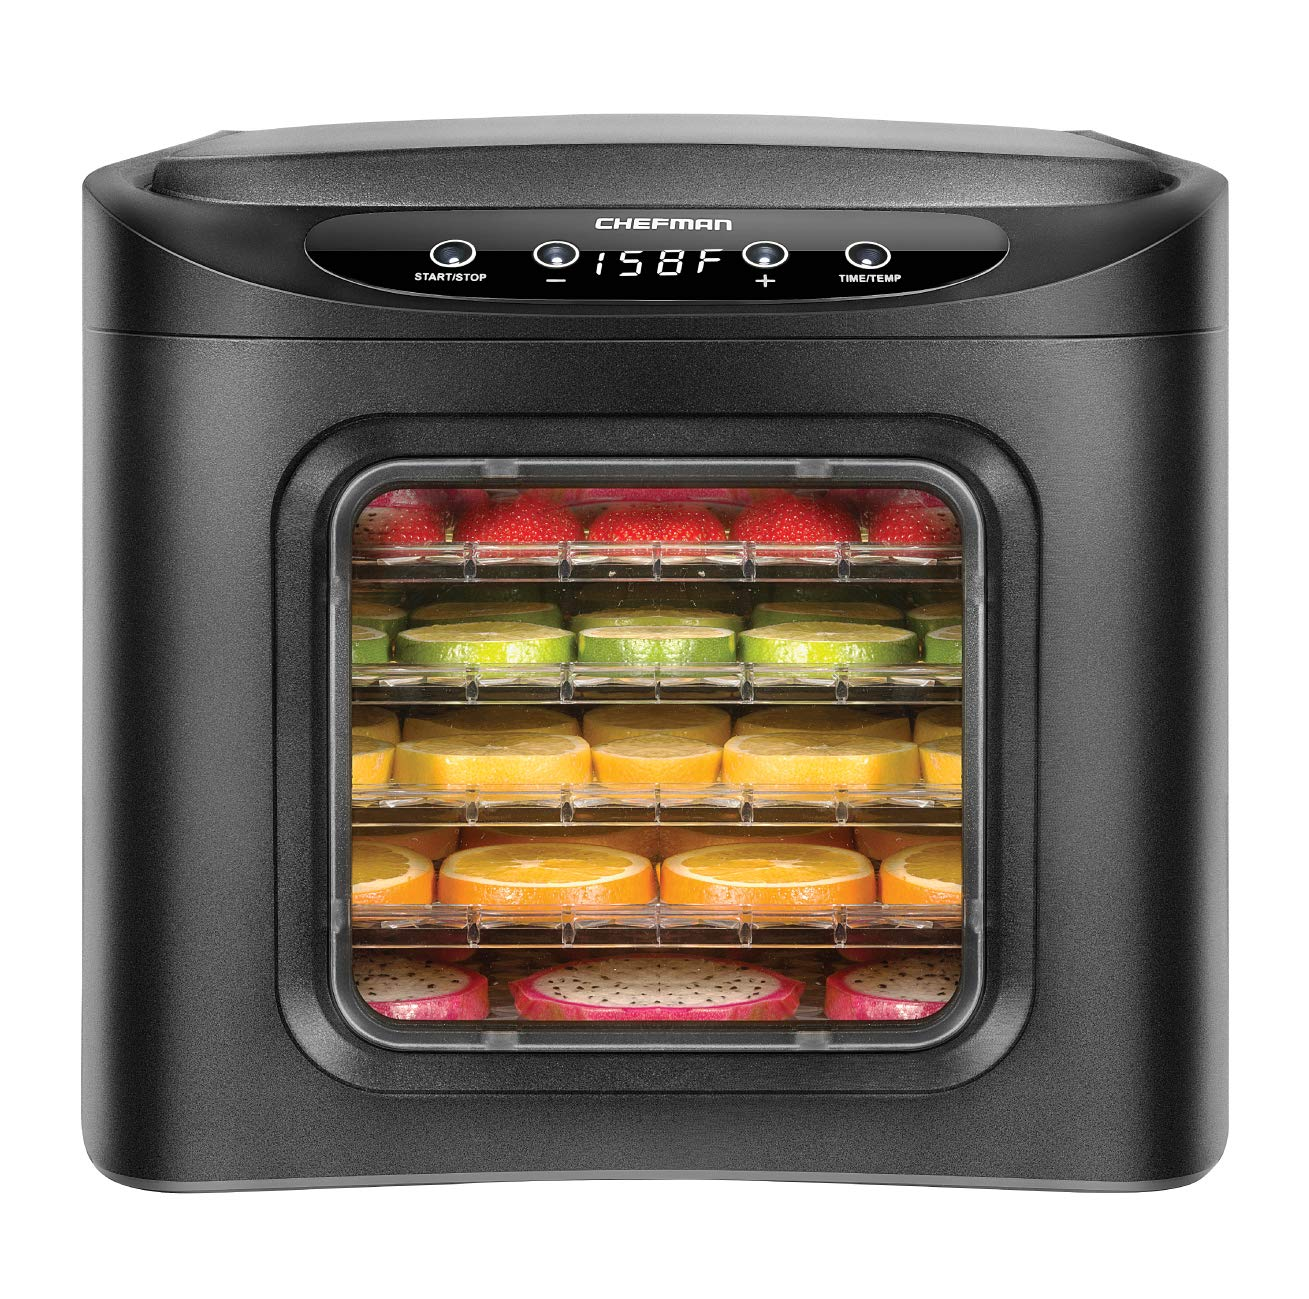 Chefman Food Dehydrator Machine